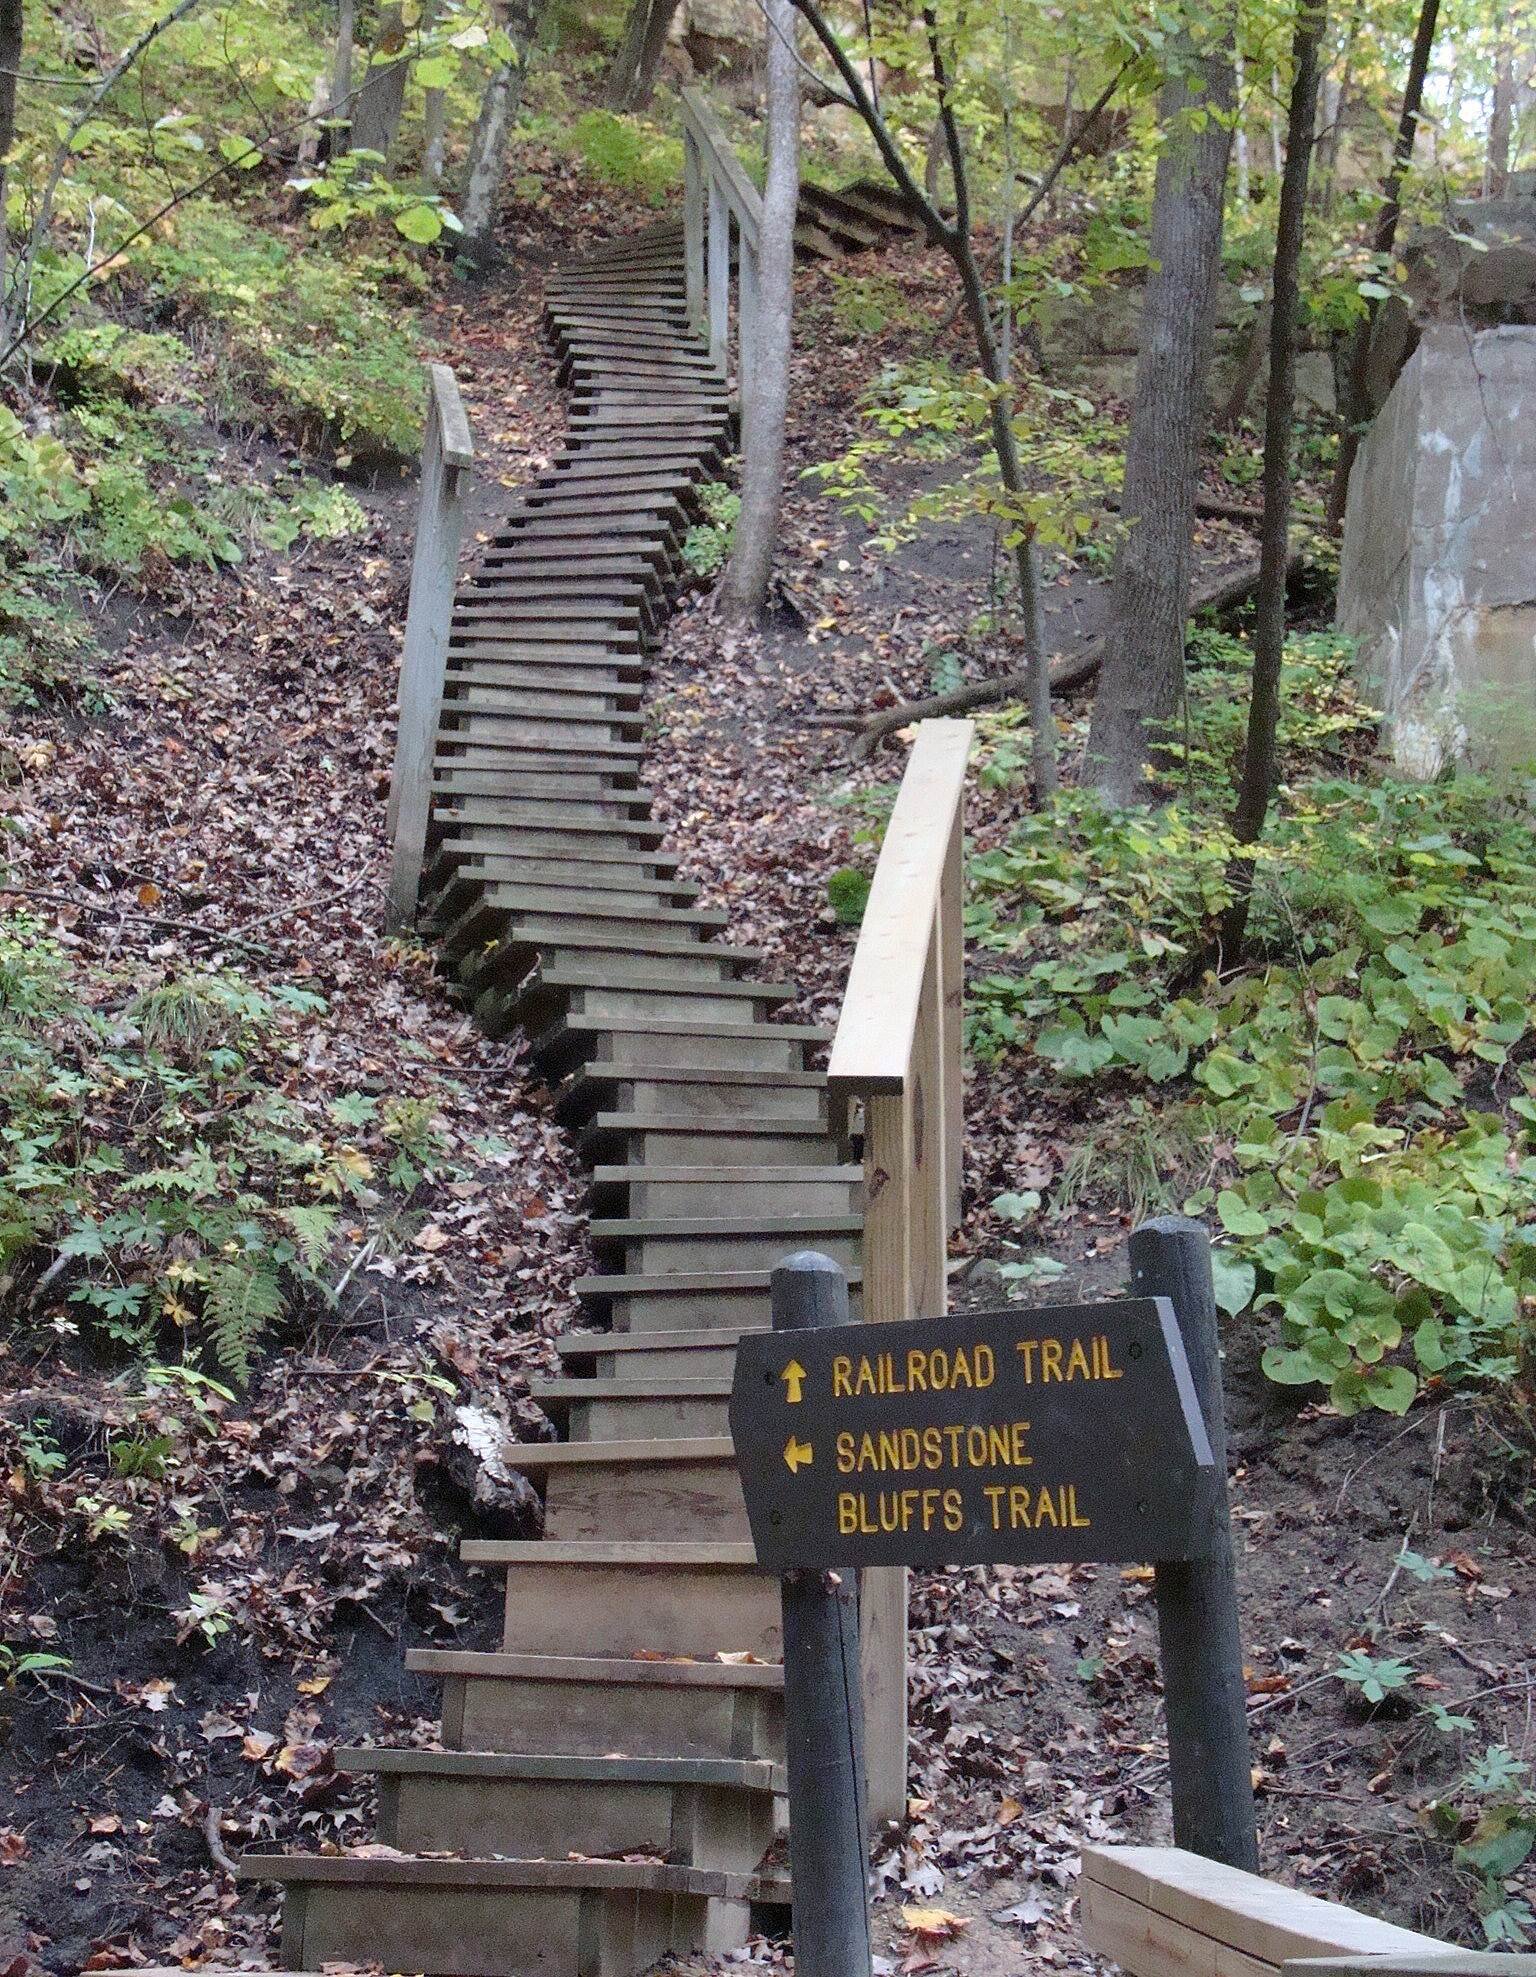 Interstate State Park to Taylors Falls Trail Southwest steps To replace the railroad bridge, these steps connect the trail to the State Park campground.